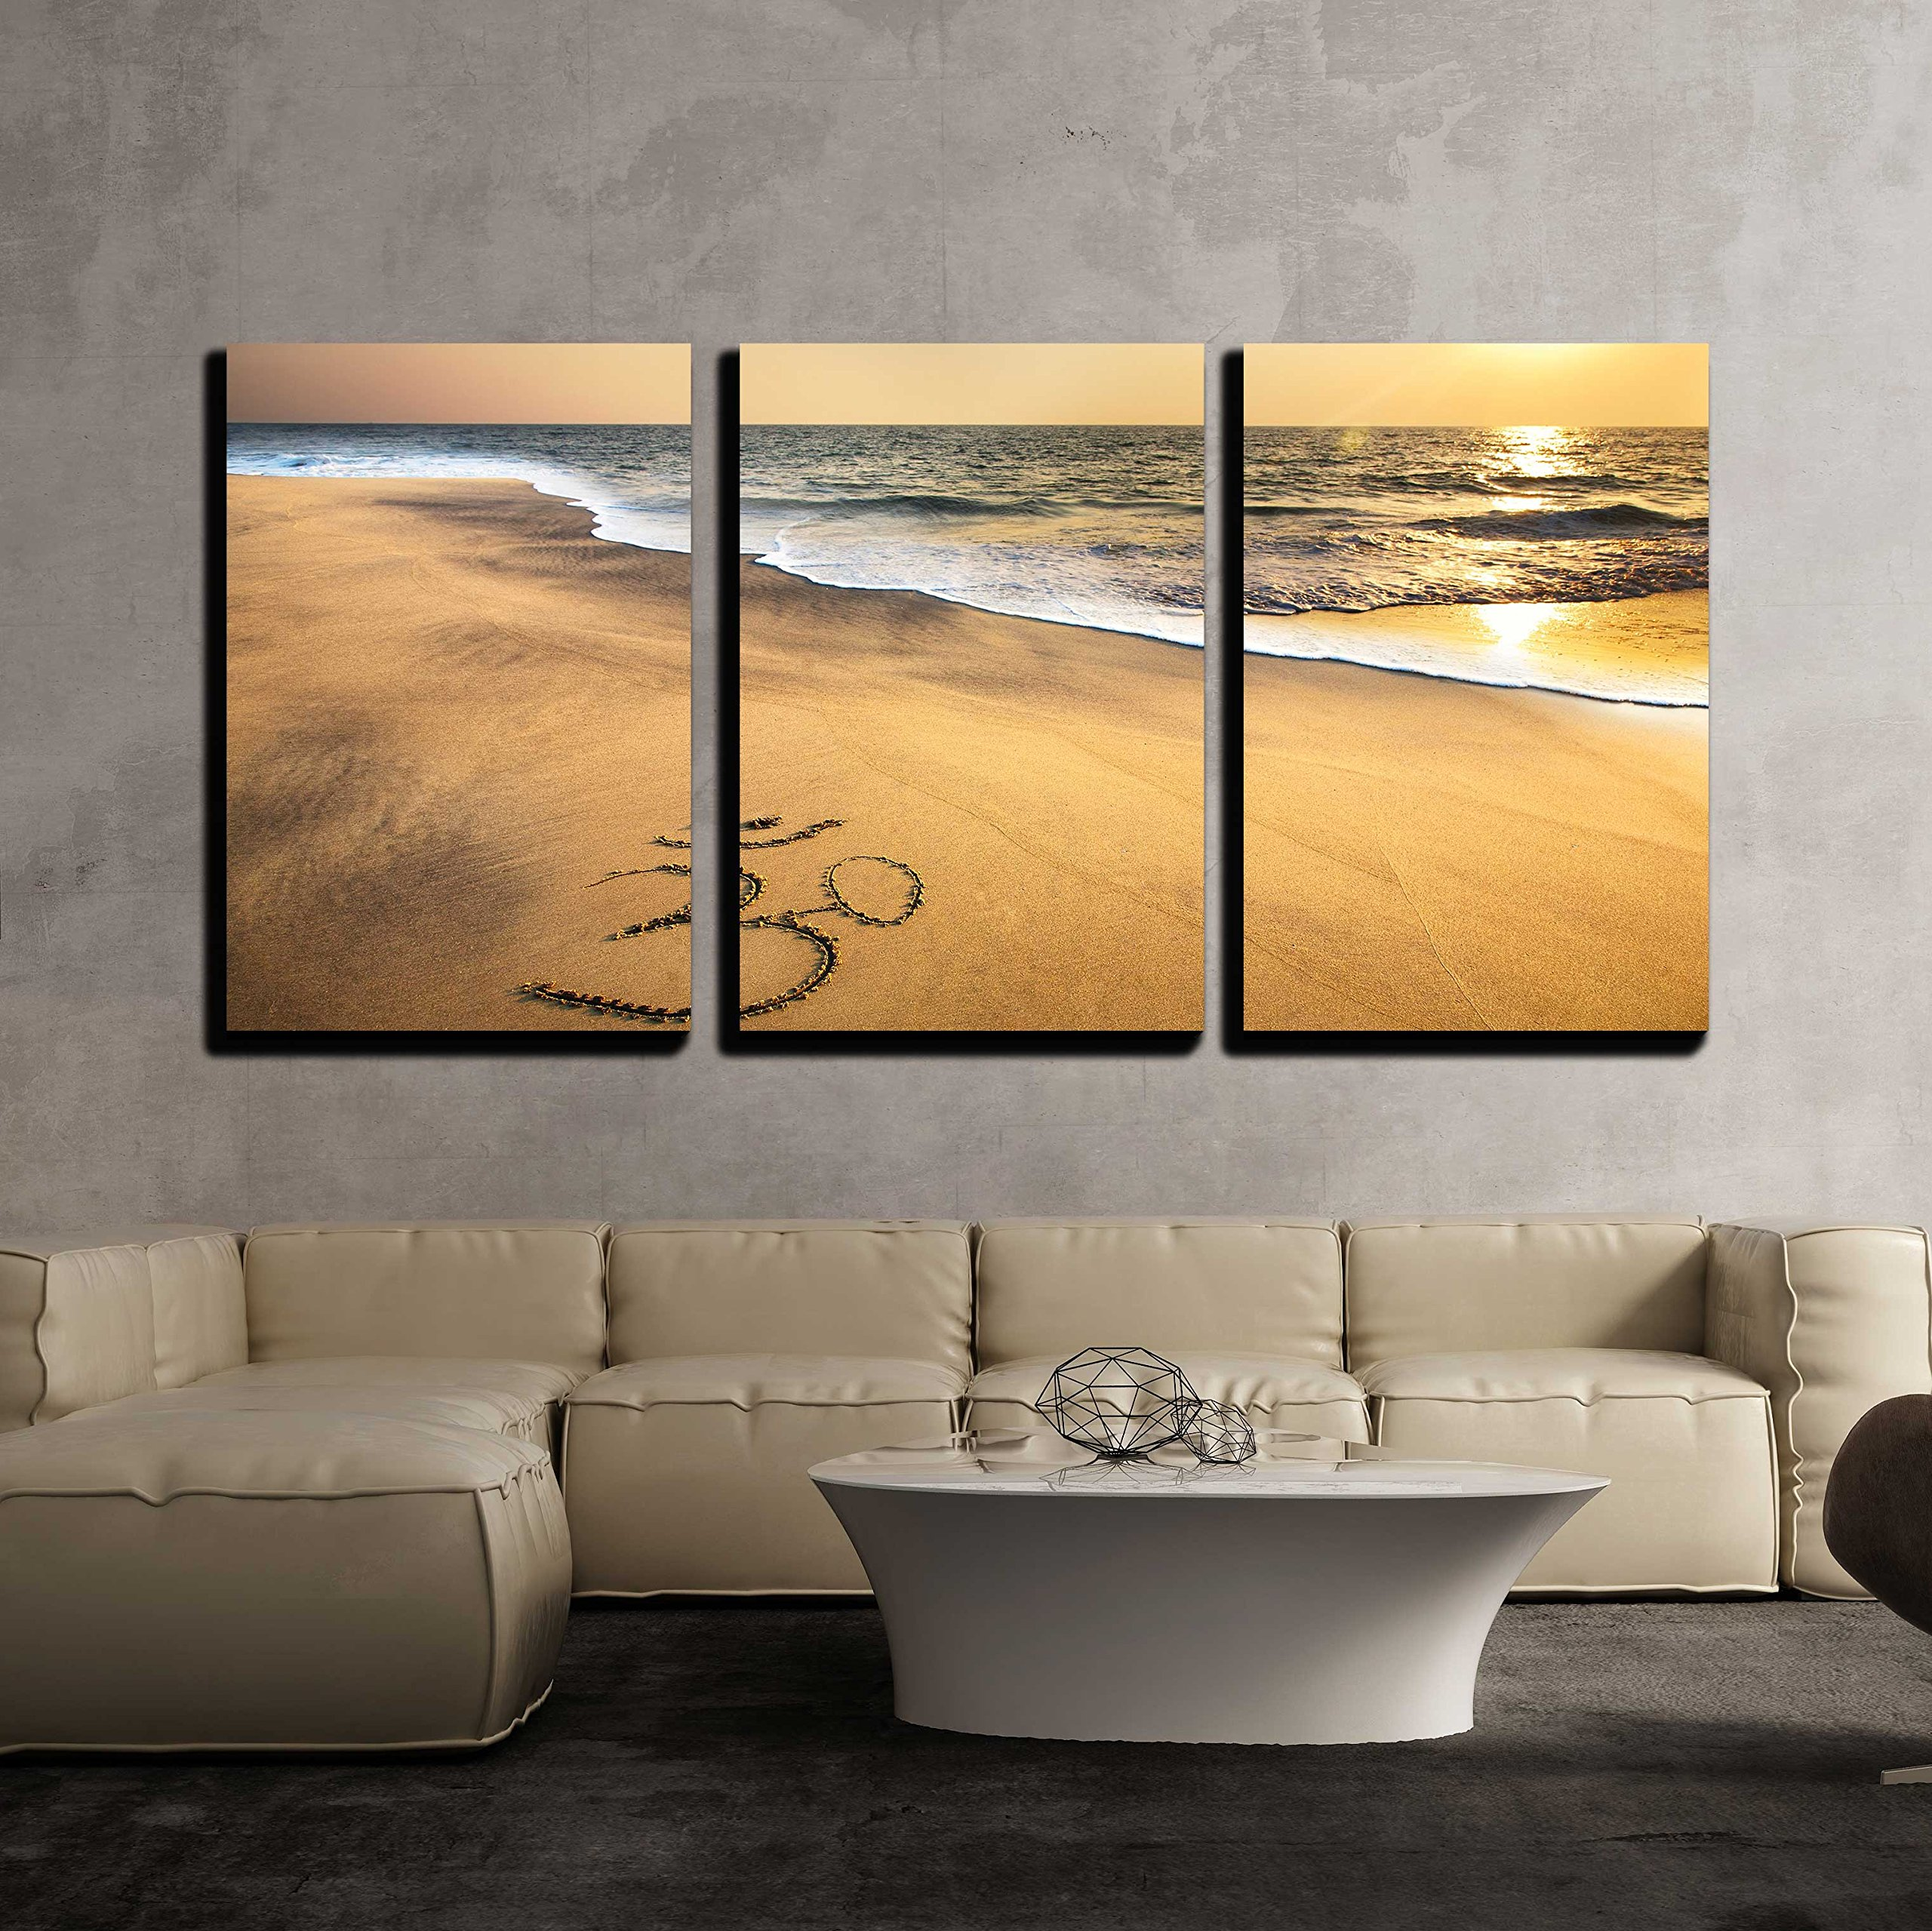 wall26 - 3 Piece Canvas Wall Art - Om Symbol on the Sand at the Beach near the Ocean - Modern Home Decor Stretched and Framed Ready to Hang - 16''x24''x3 Panels